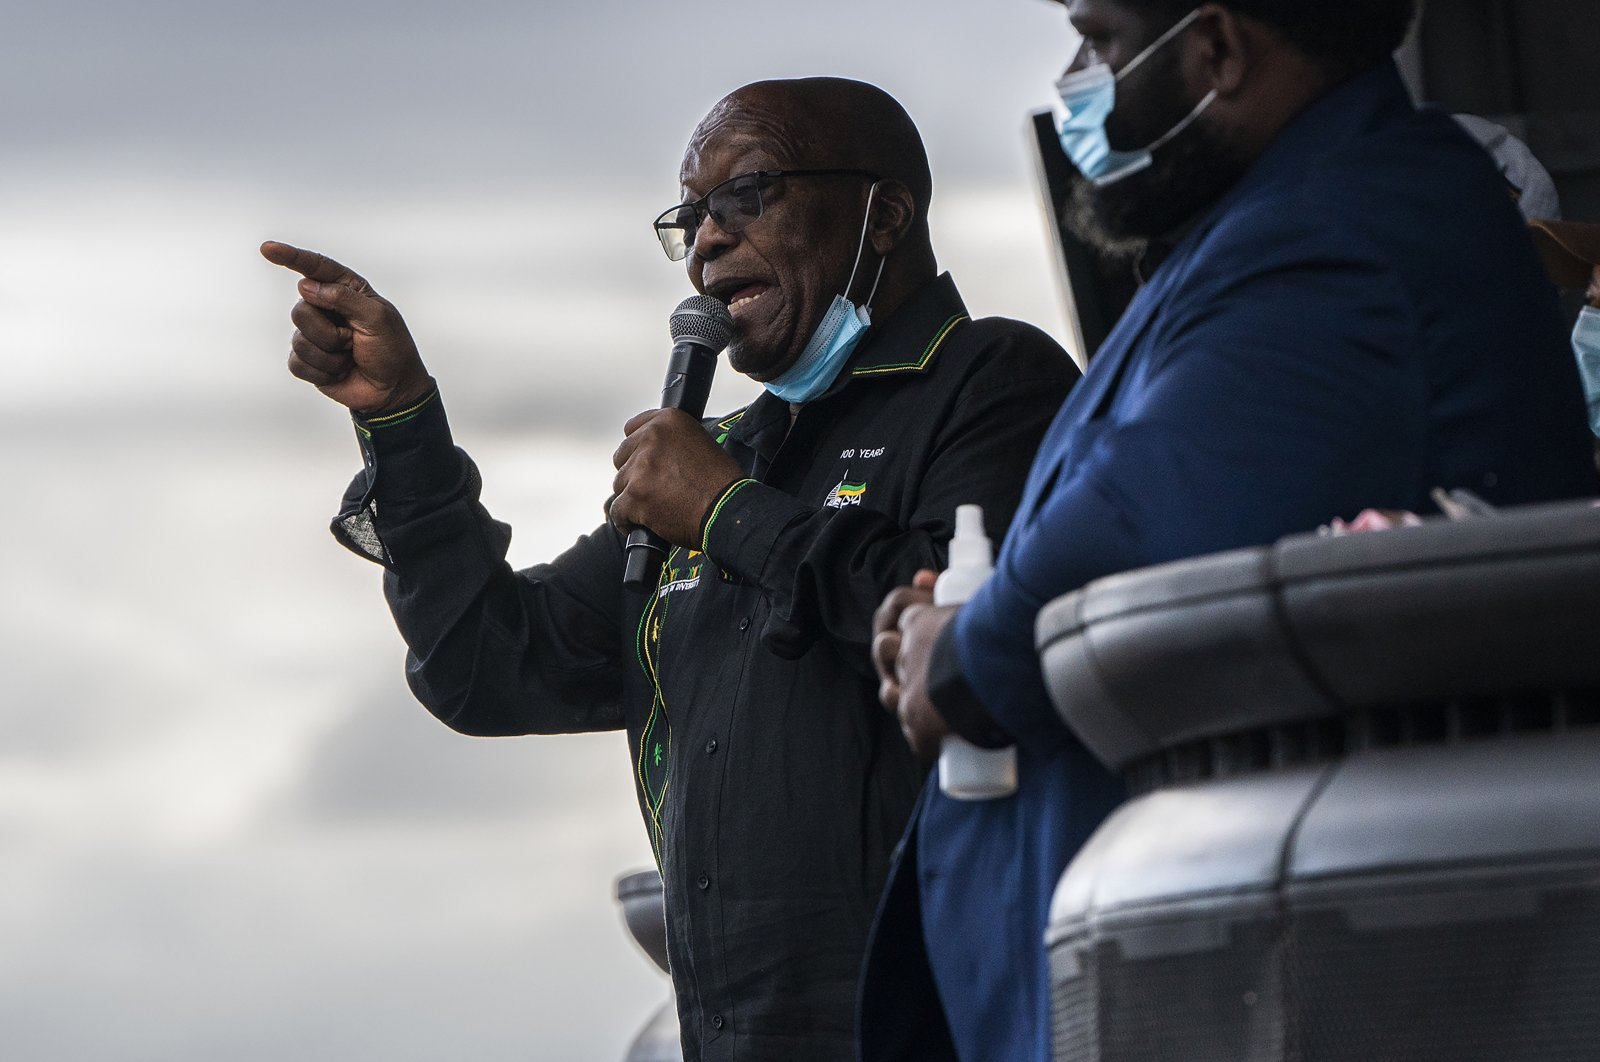 Former president Jacob Zuma addresses supporters at his home in Nkandla, KwaZulu-Natal Province, South Africa, July 4, 2021. (AP Photo)